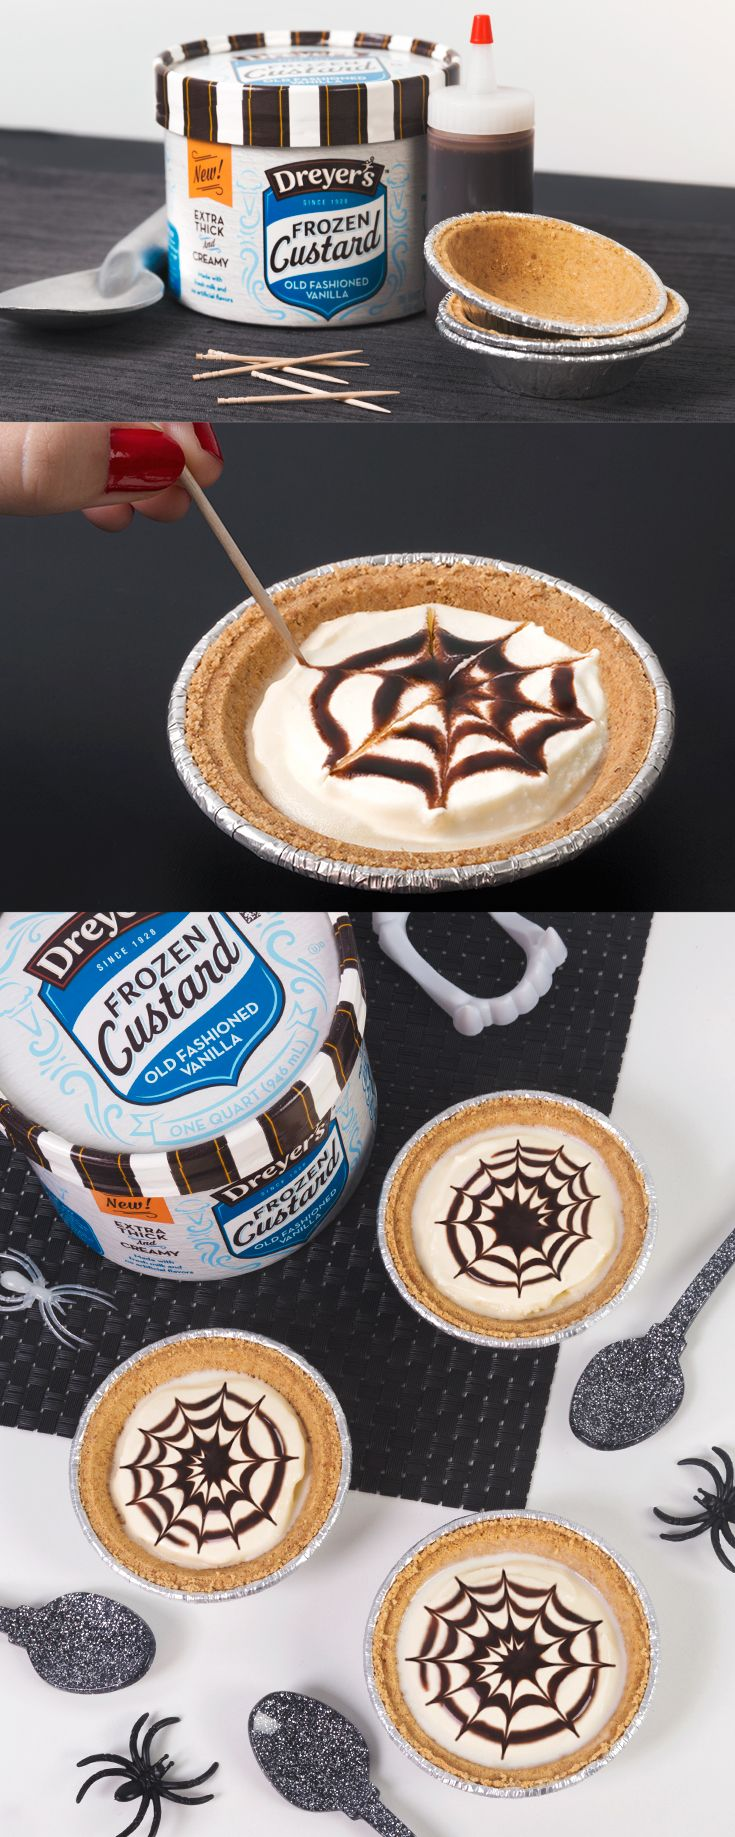 It's spooky how delicious this easy, no-bake Halloween dessert recipe is – and your kids will love it! Begin by filling a pie shell with Old Fashioned Vanilla Frozen Custard. Then, drizzle chocolate syrup in a spiral pattern on top. Simply take a toothpick and drag it from the center of the pie through the syrup until it reaches the crust. Continue this step until your final spider web creation is complete!